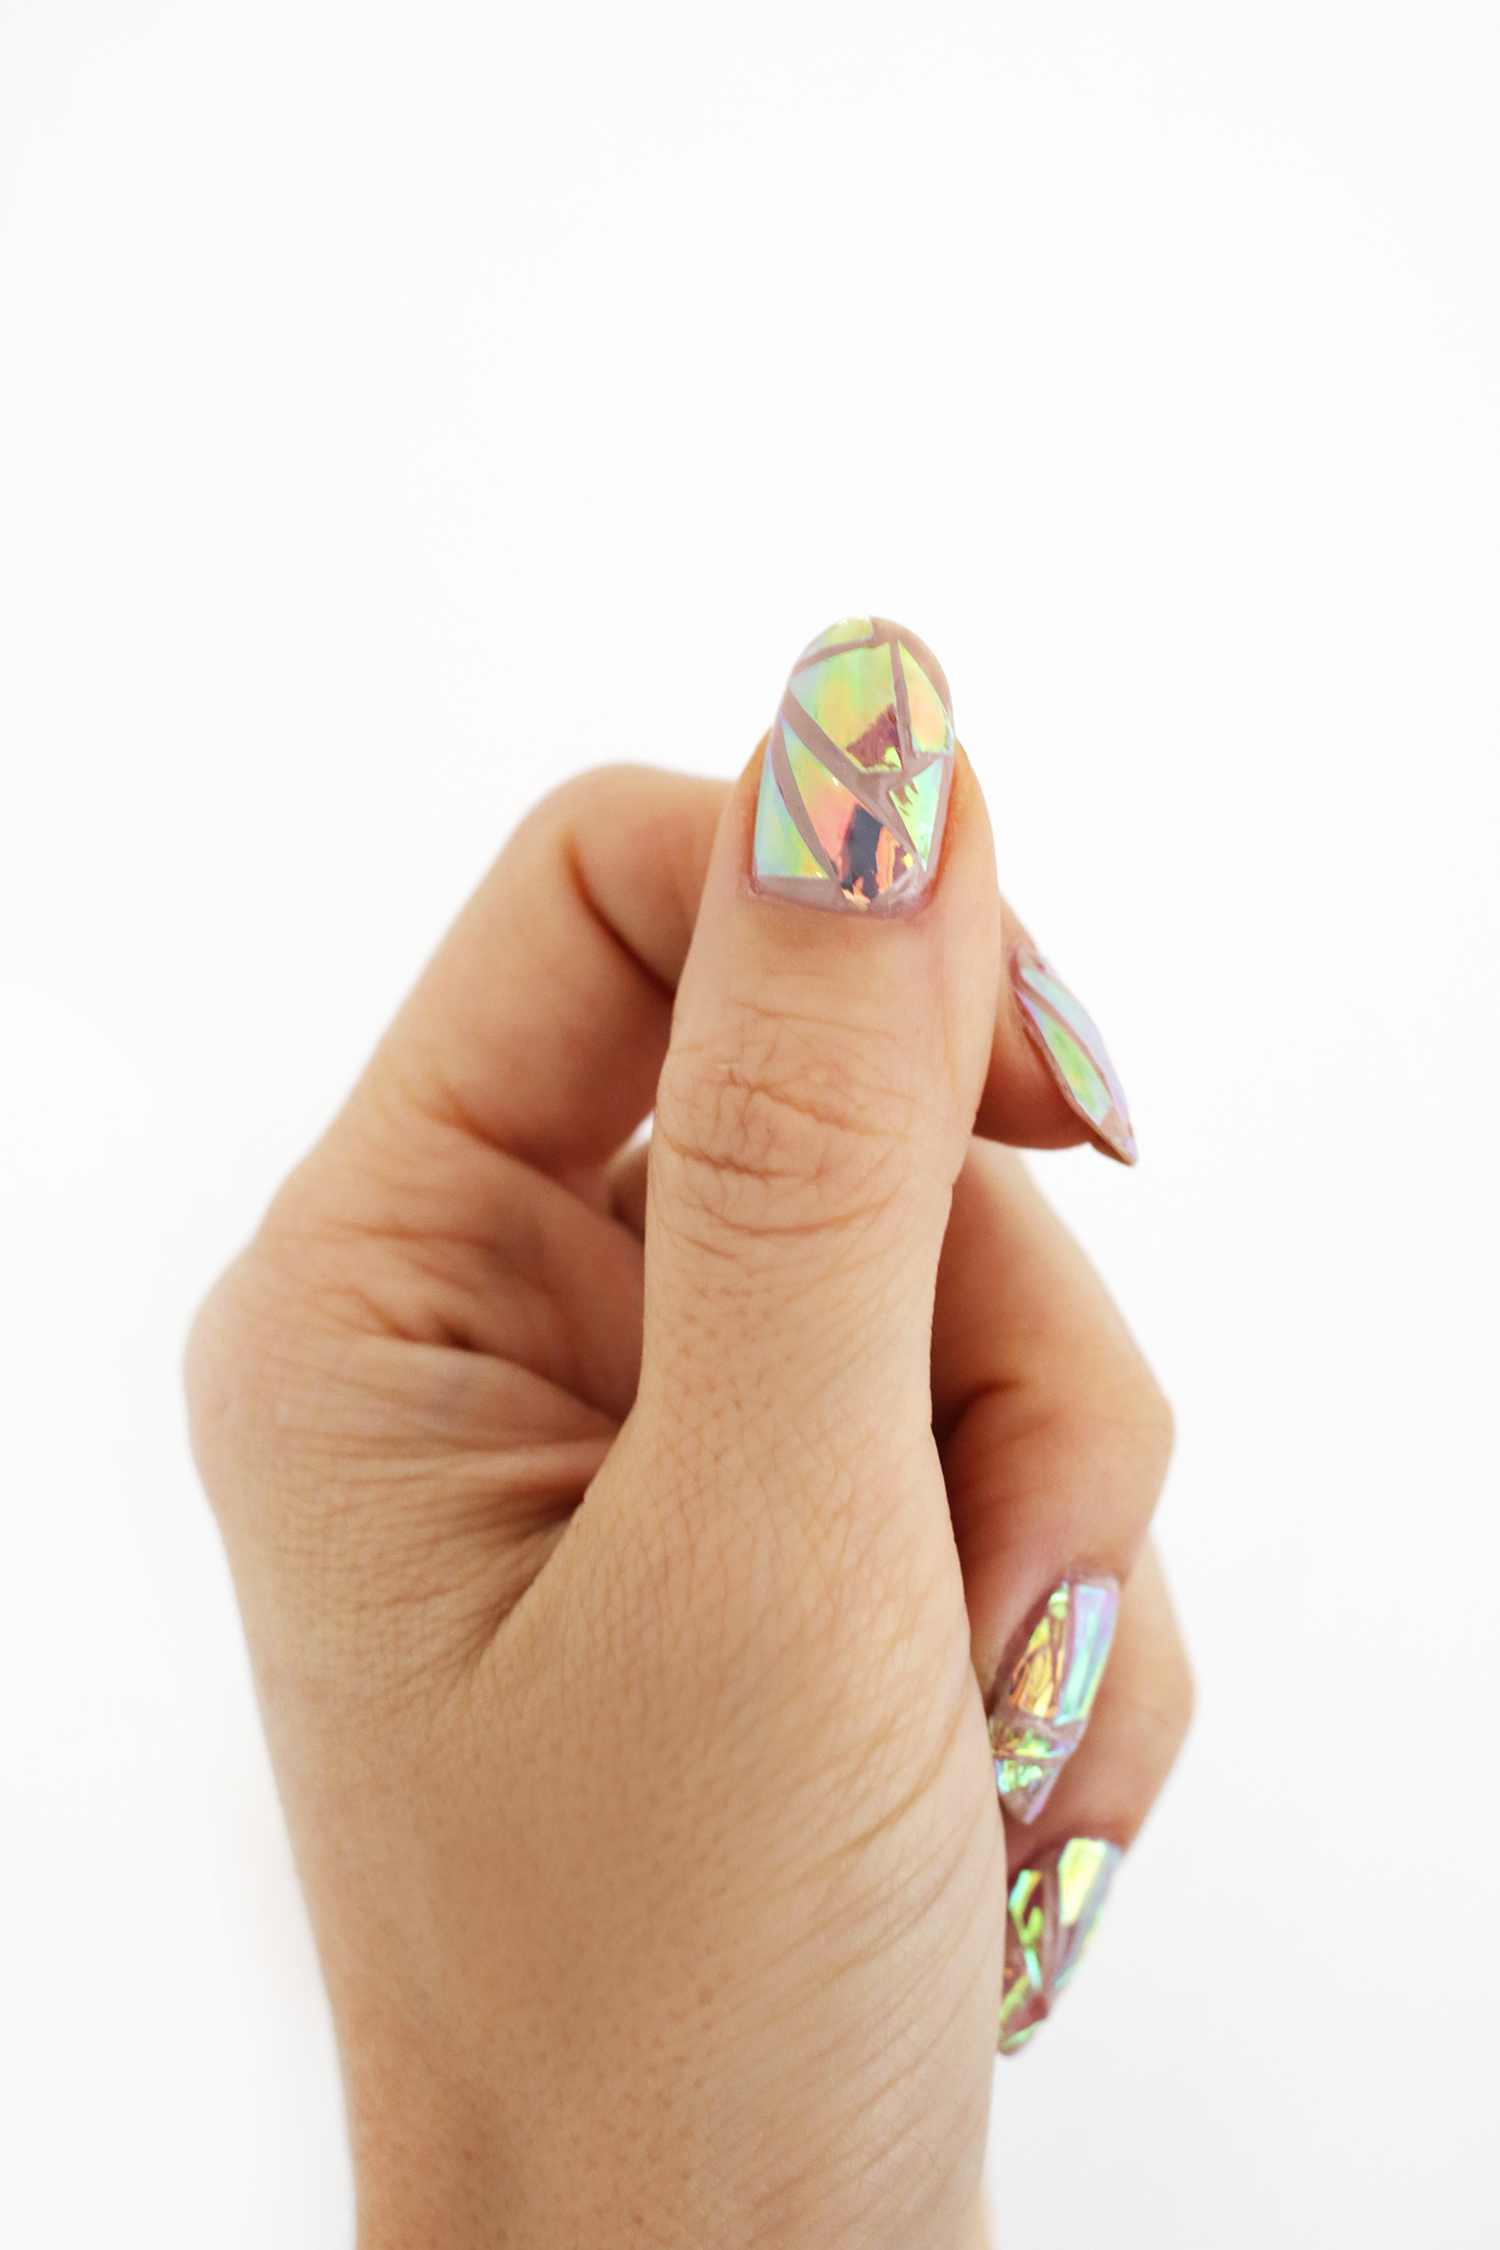 Hologram nail decal DIY